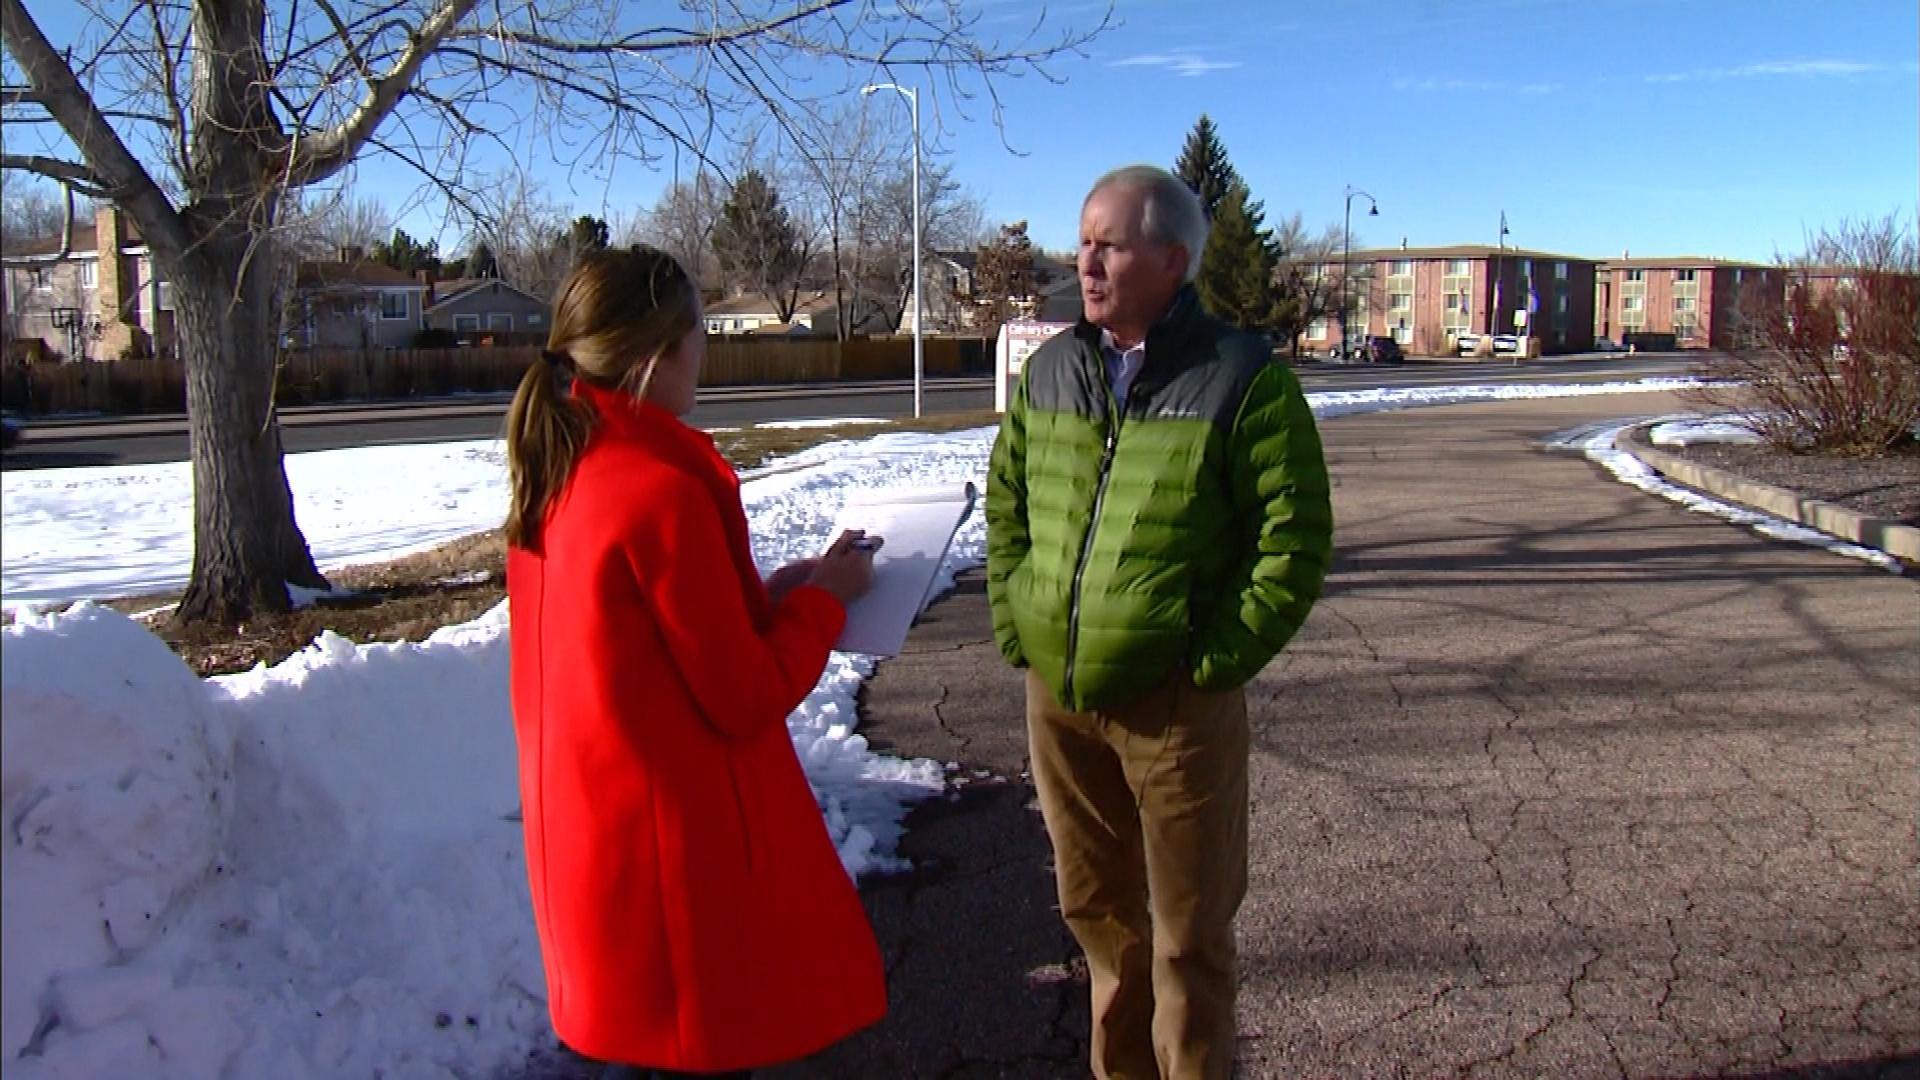 CBS4's Lauren DiSpirito interviews Calvary Church Senior Pastor Steve Kalb (credit: CBS)